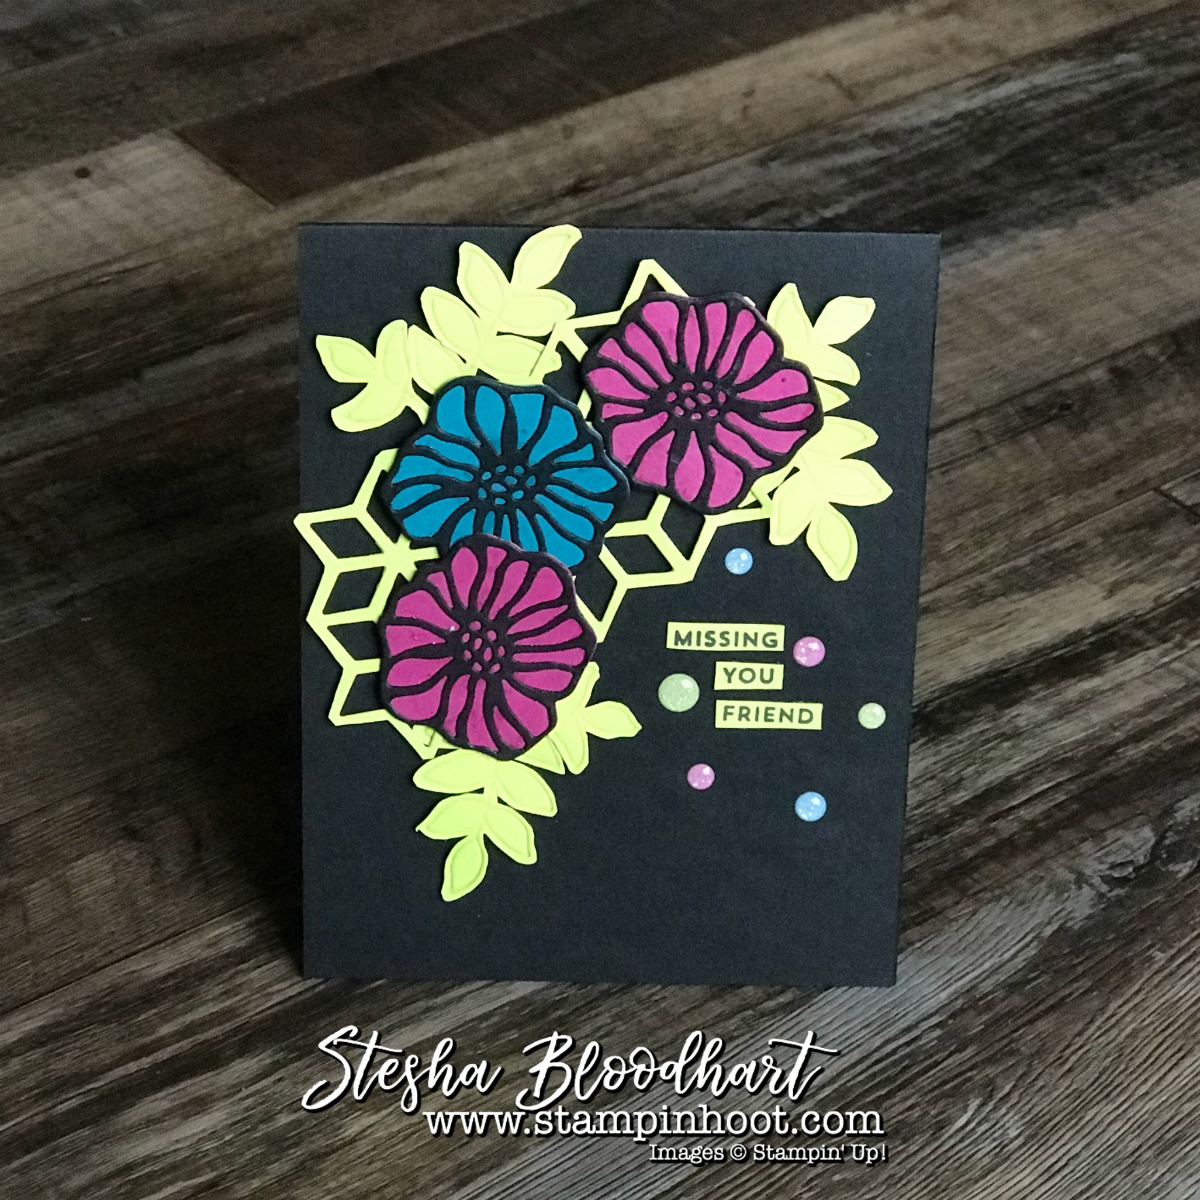 Oh So Eclectic Bundle by Stampin' Up! for Missing You Friend Card by Stesha Bloodhart with Stampin' Hoot! #steshabloodhart #stampinhoot